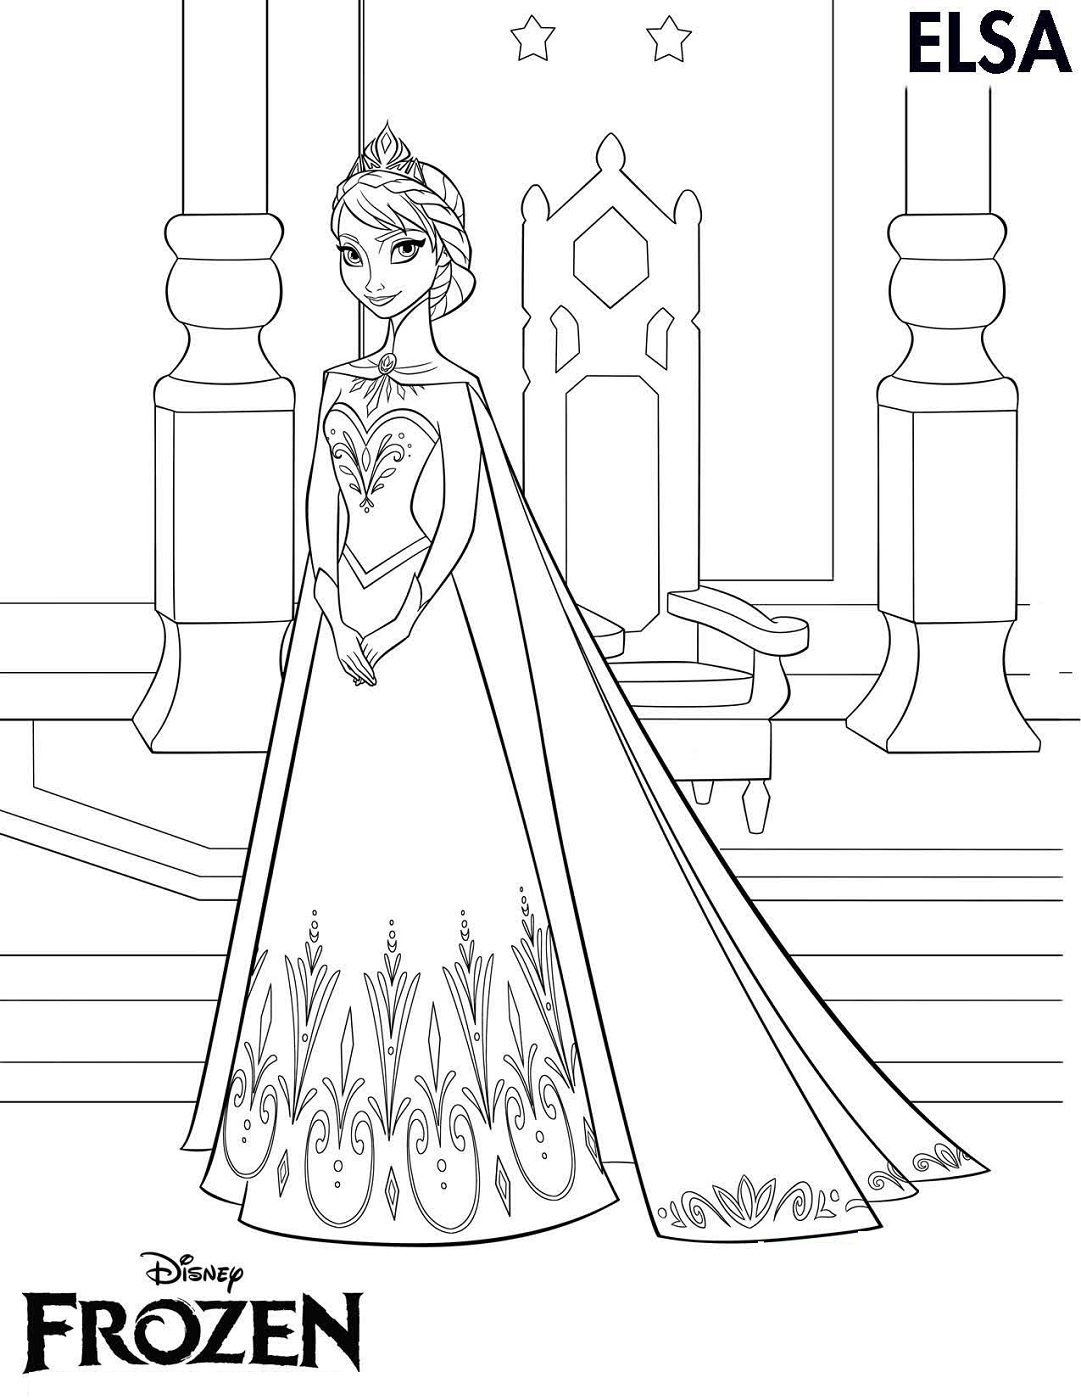 activity coloring pages frozen worksheets coloring printable activity shelter